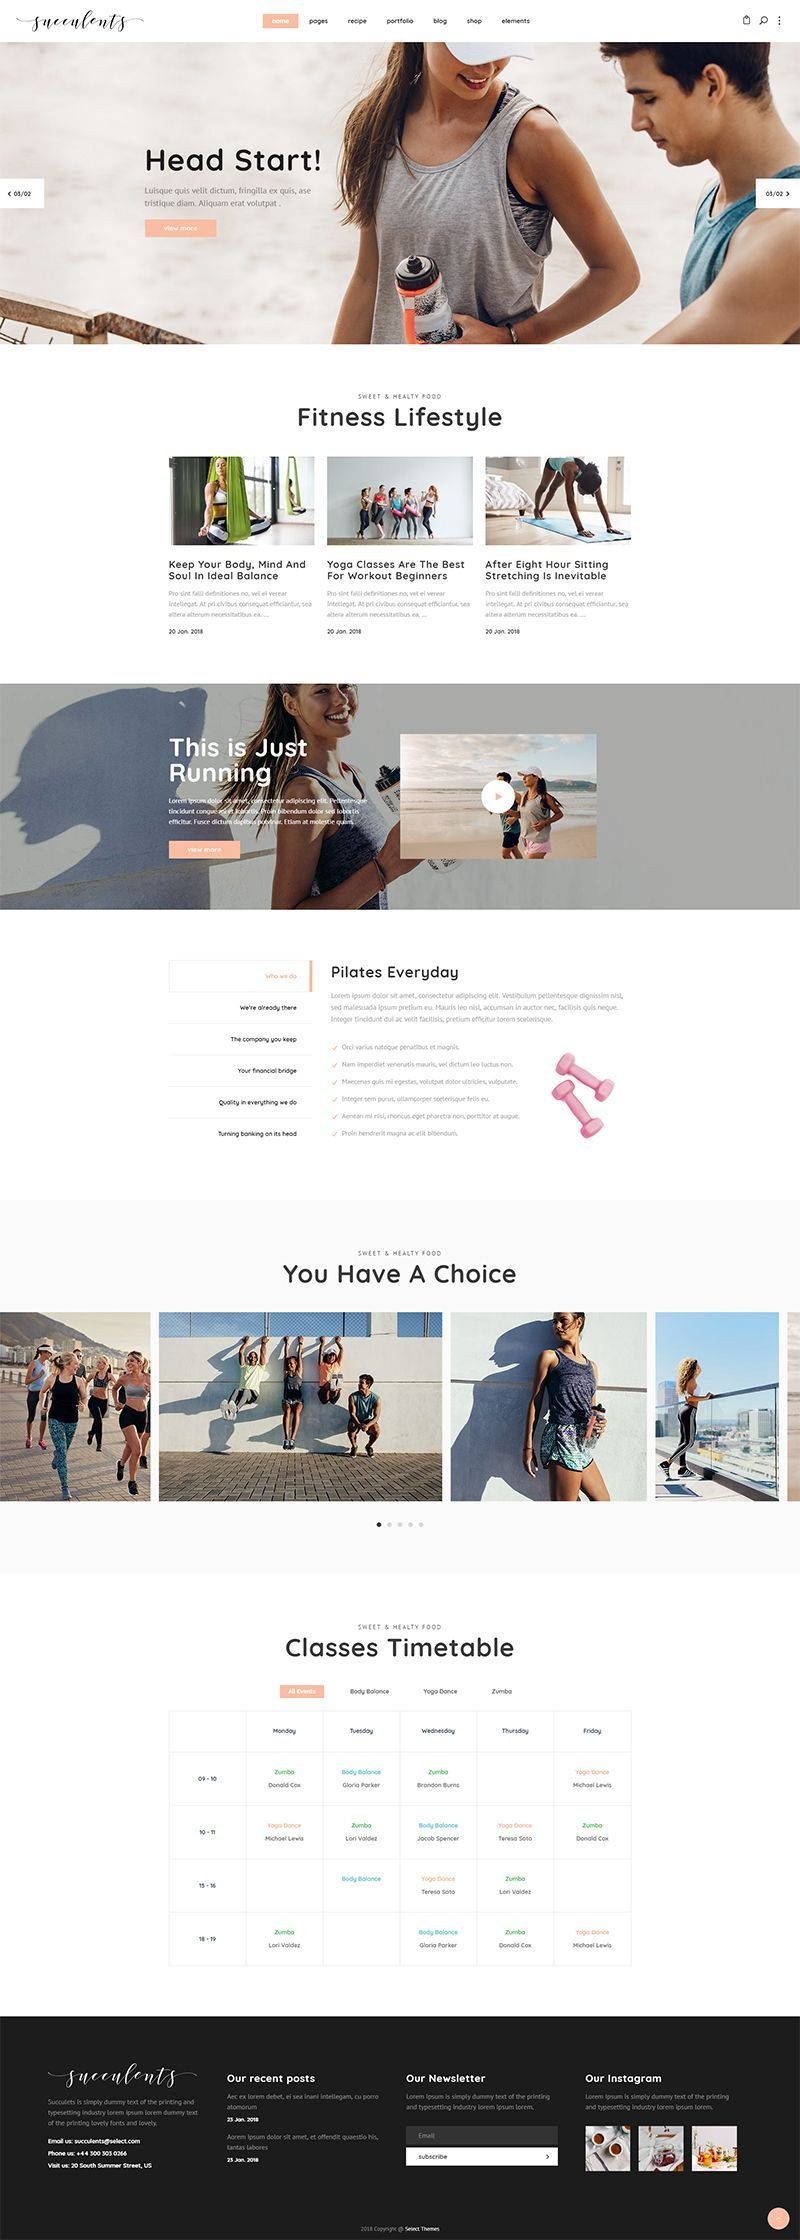 Succulents WordPress theme is packed with everything you'll need for creating an incredible healthy...